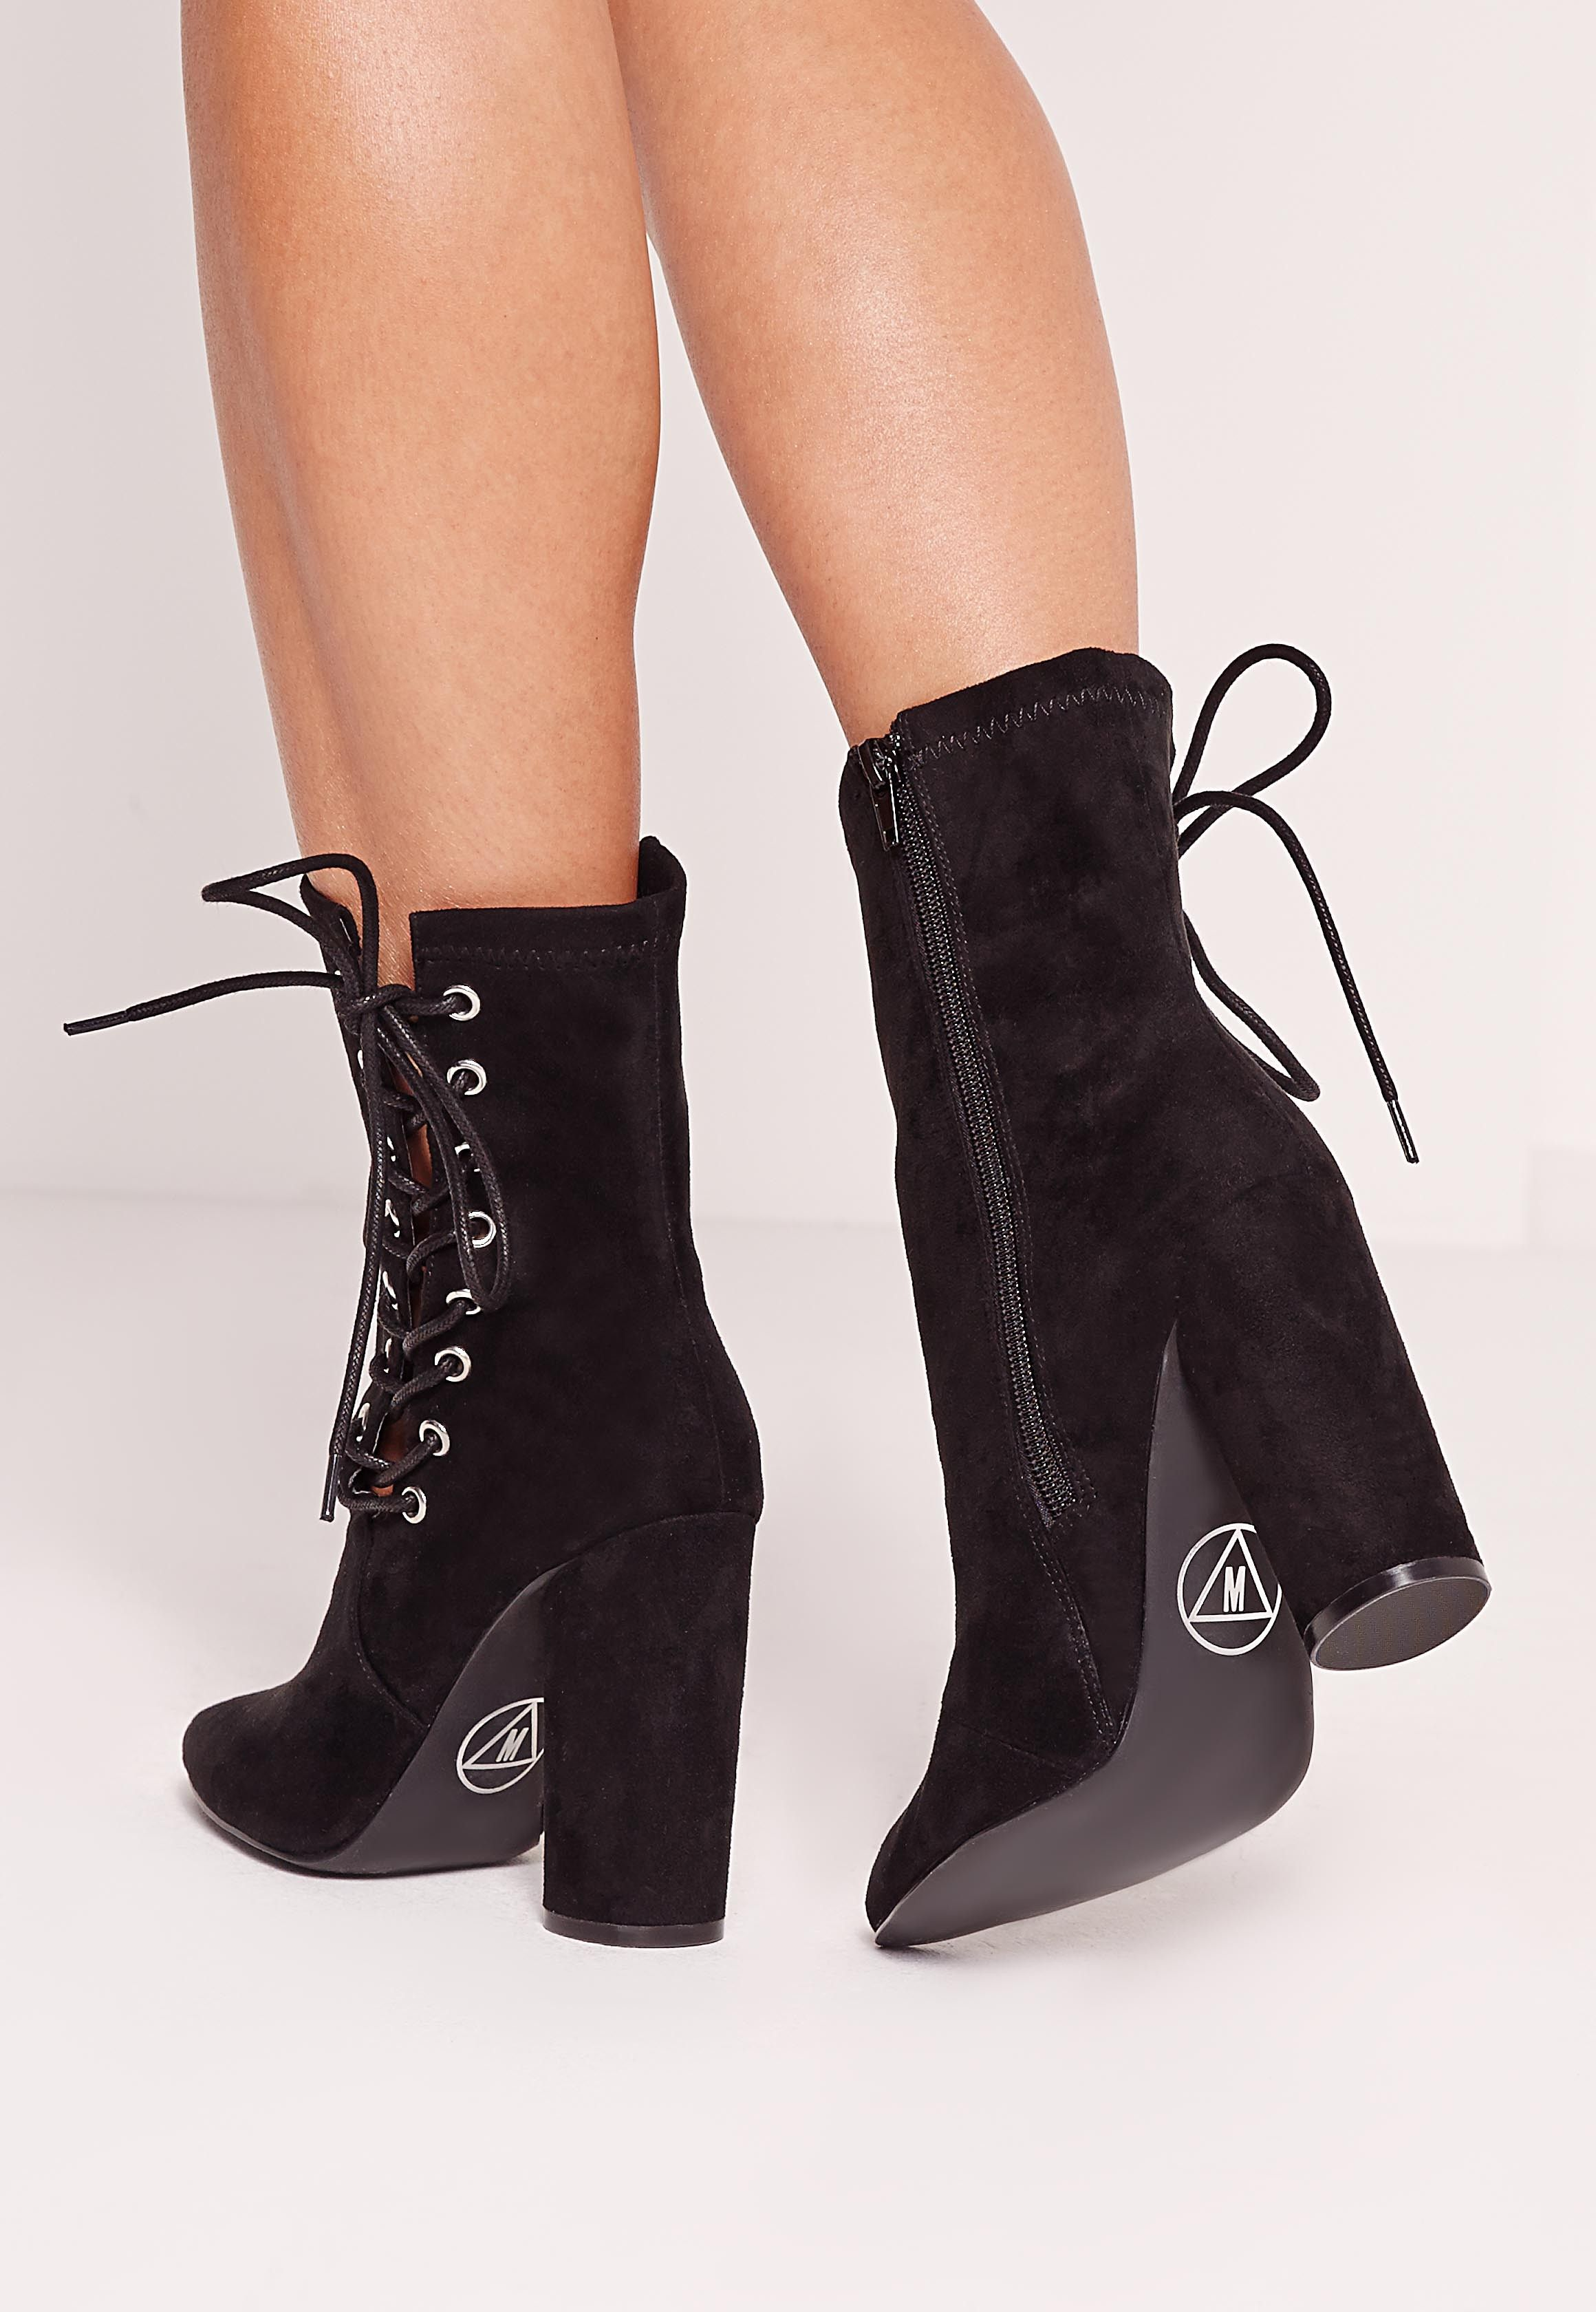 8876c5d15f8e Missguided - Black Faux Suede Eyelet Lace Up Heeled Ankle Boots ...